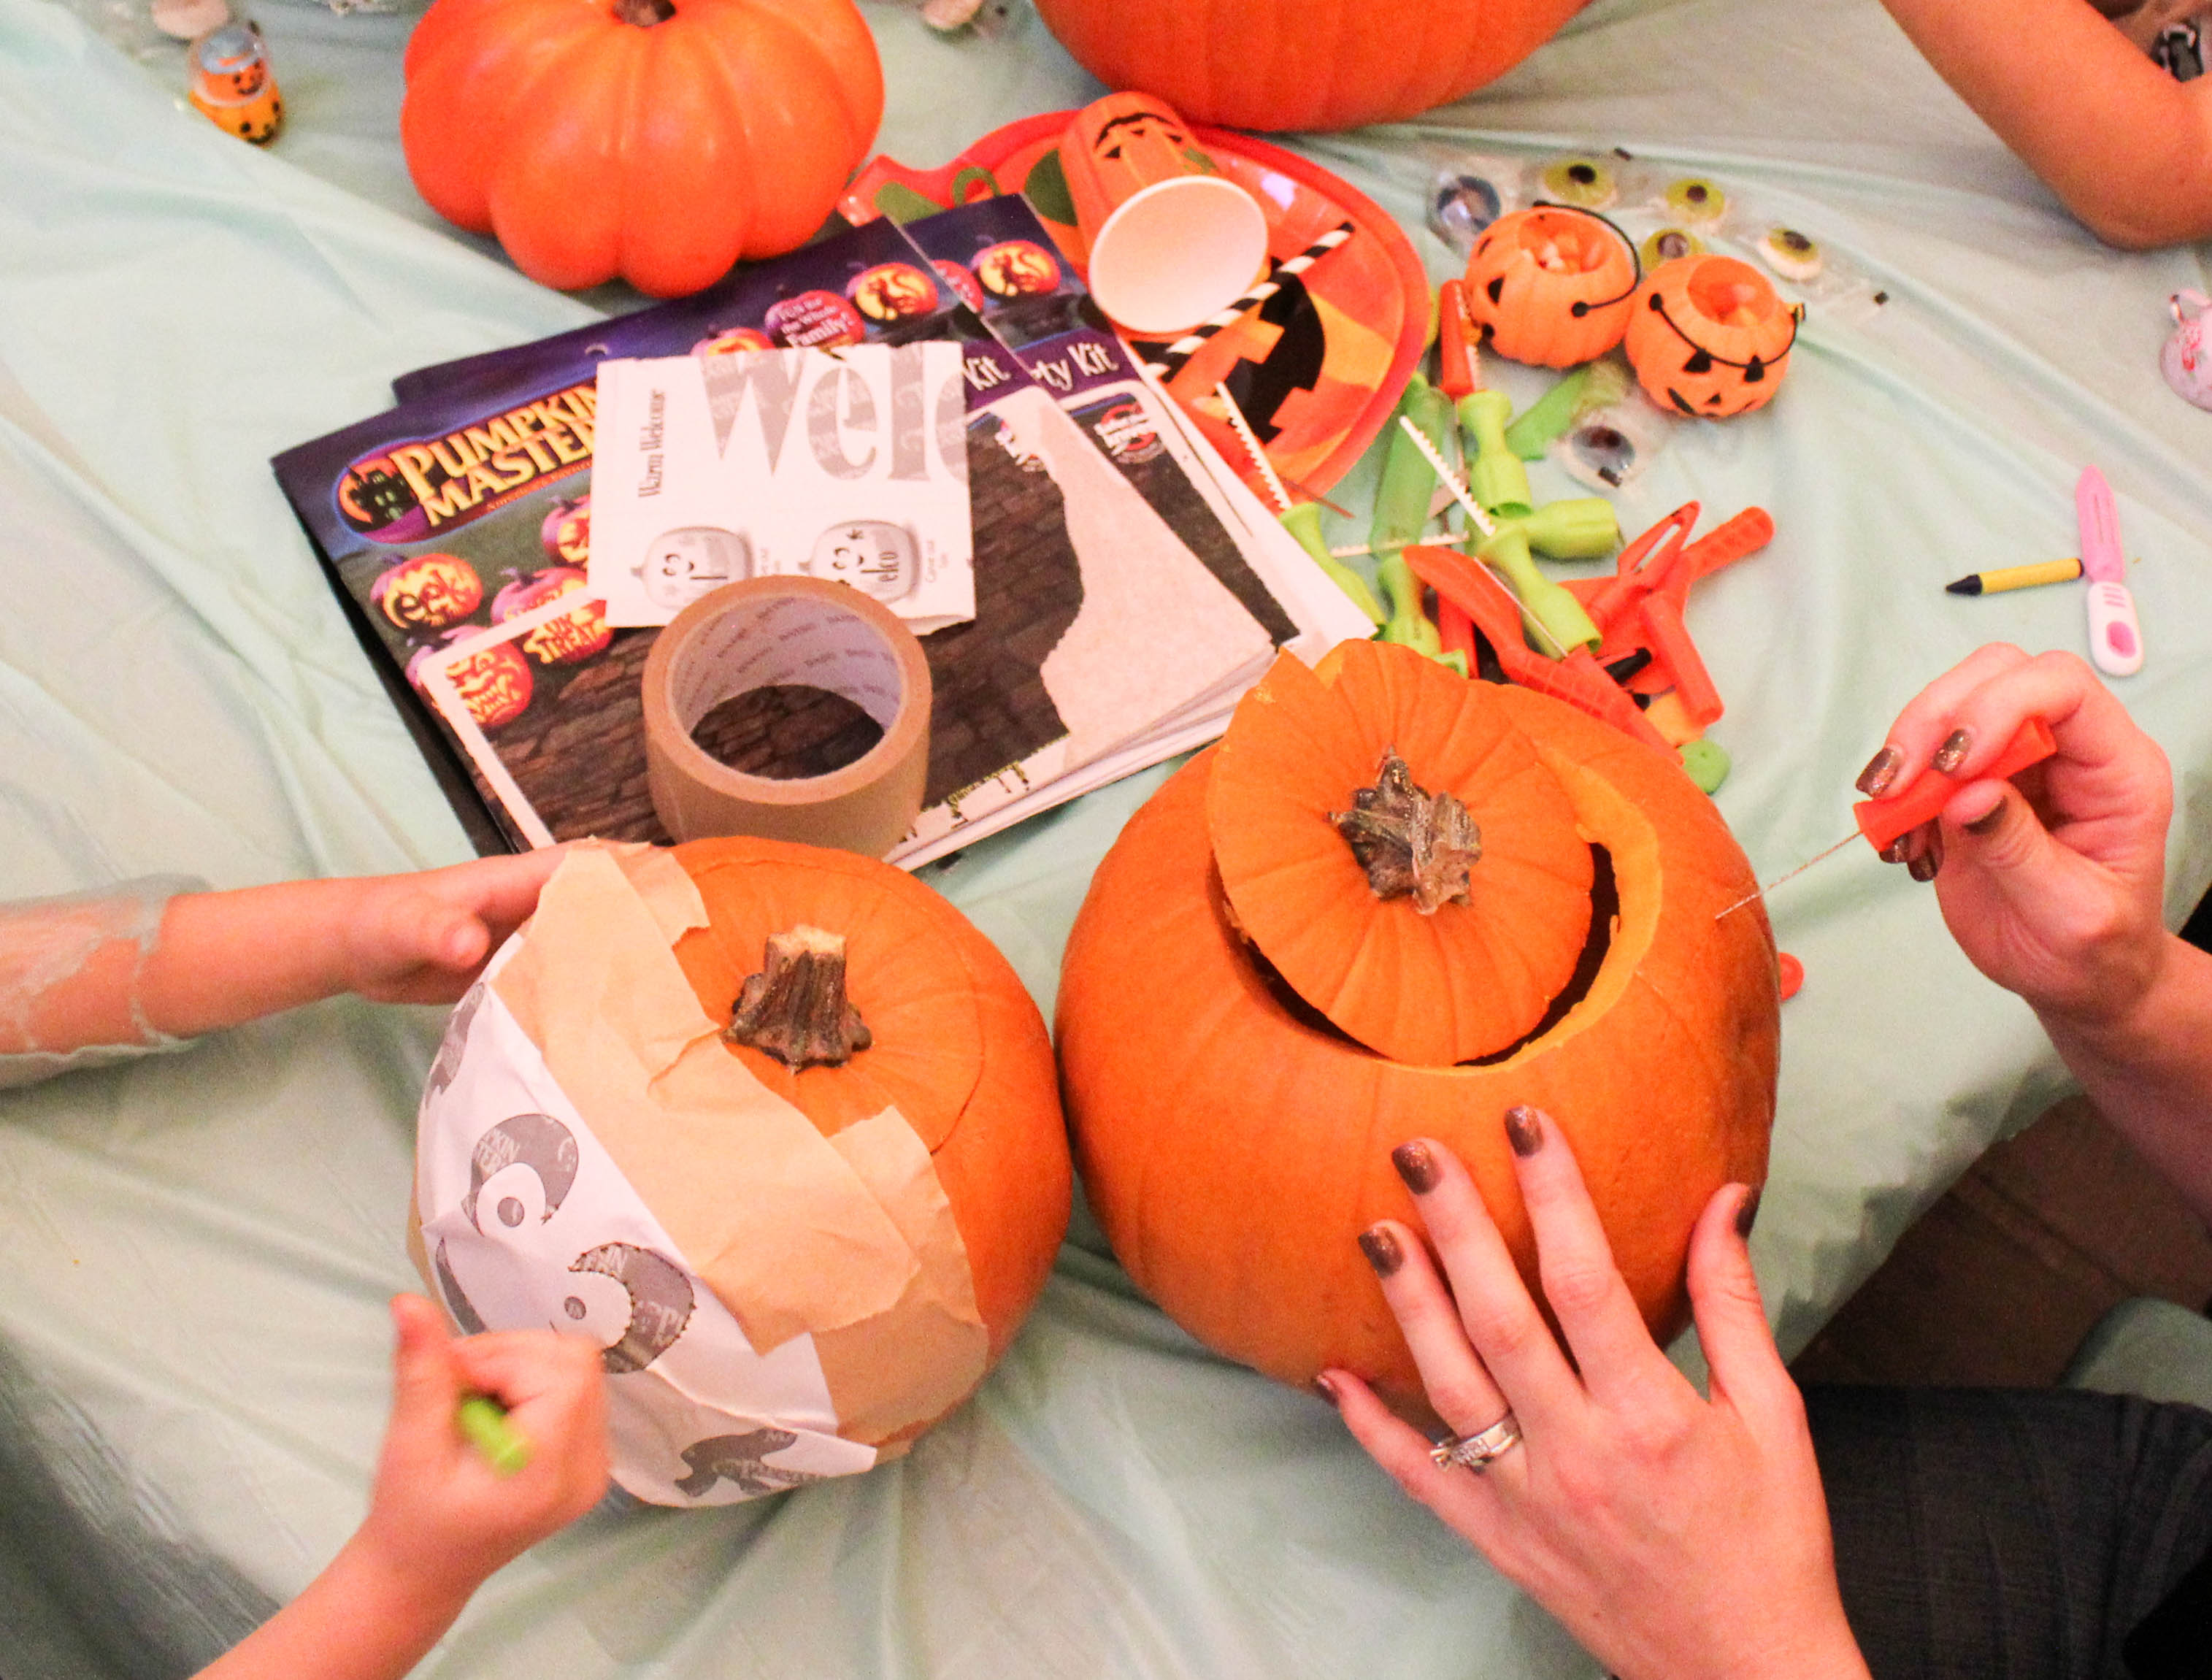 pumpkin-carving-party-costumes-kids-halloween-43-copy